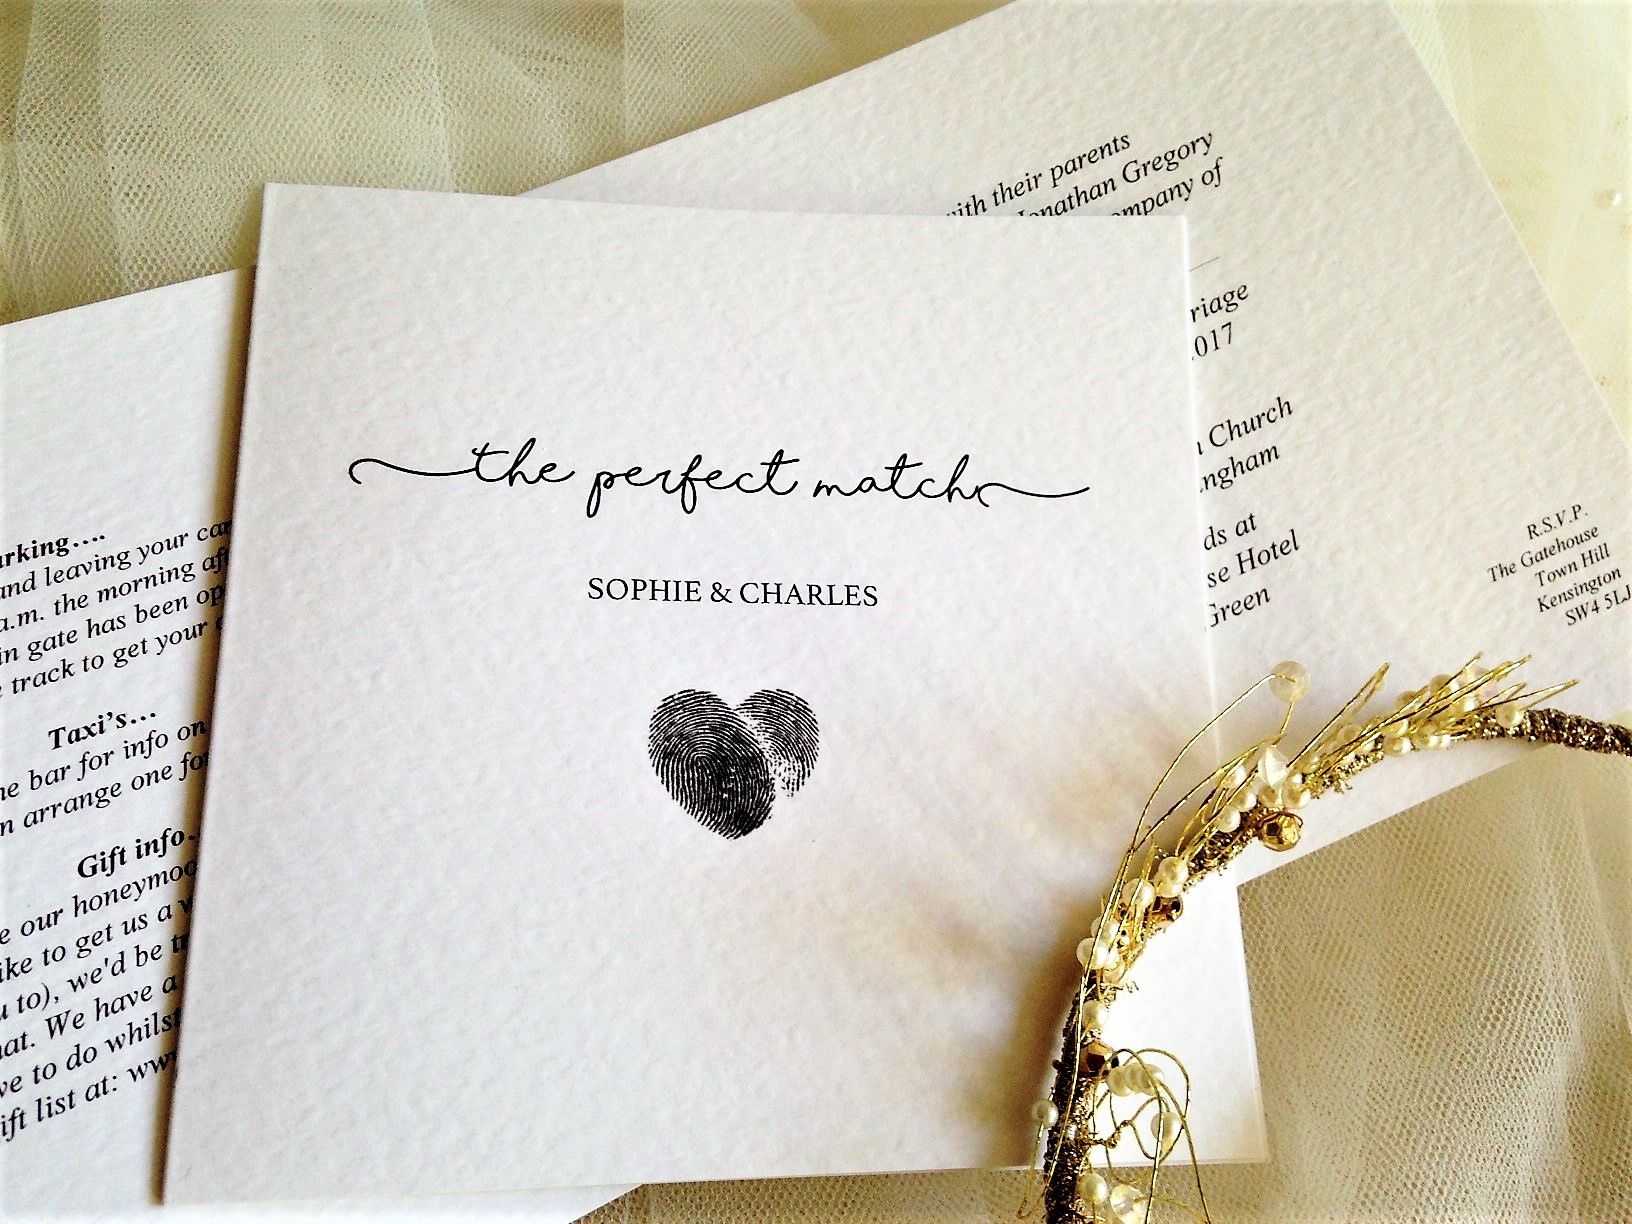 Perfect Match Wedding Invitations - Daisy Chain Invites